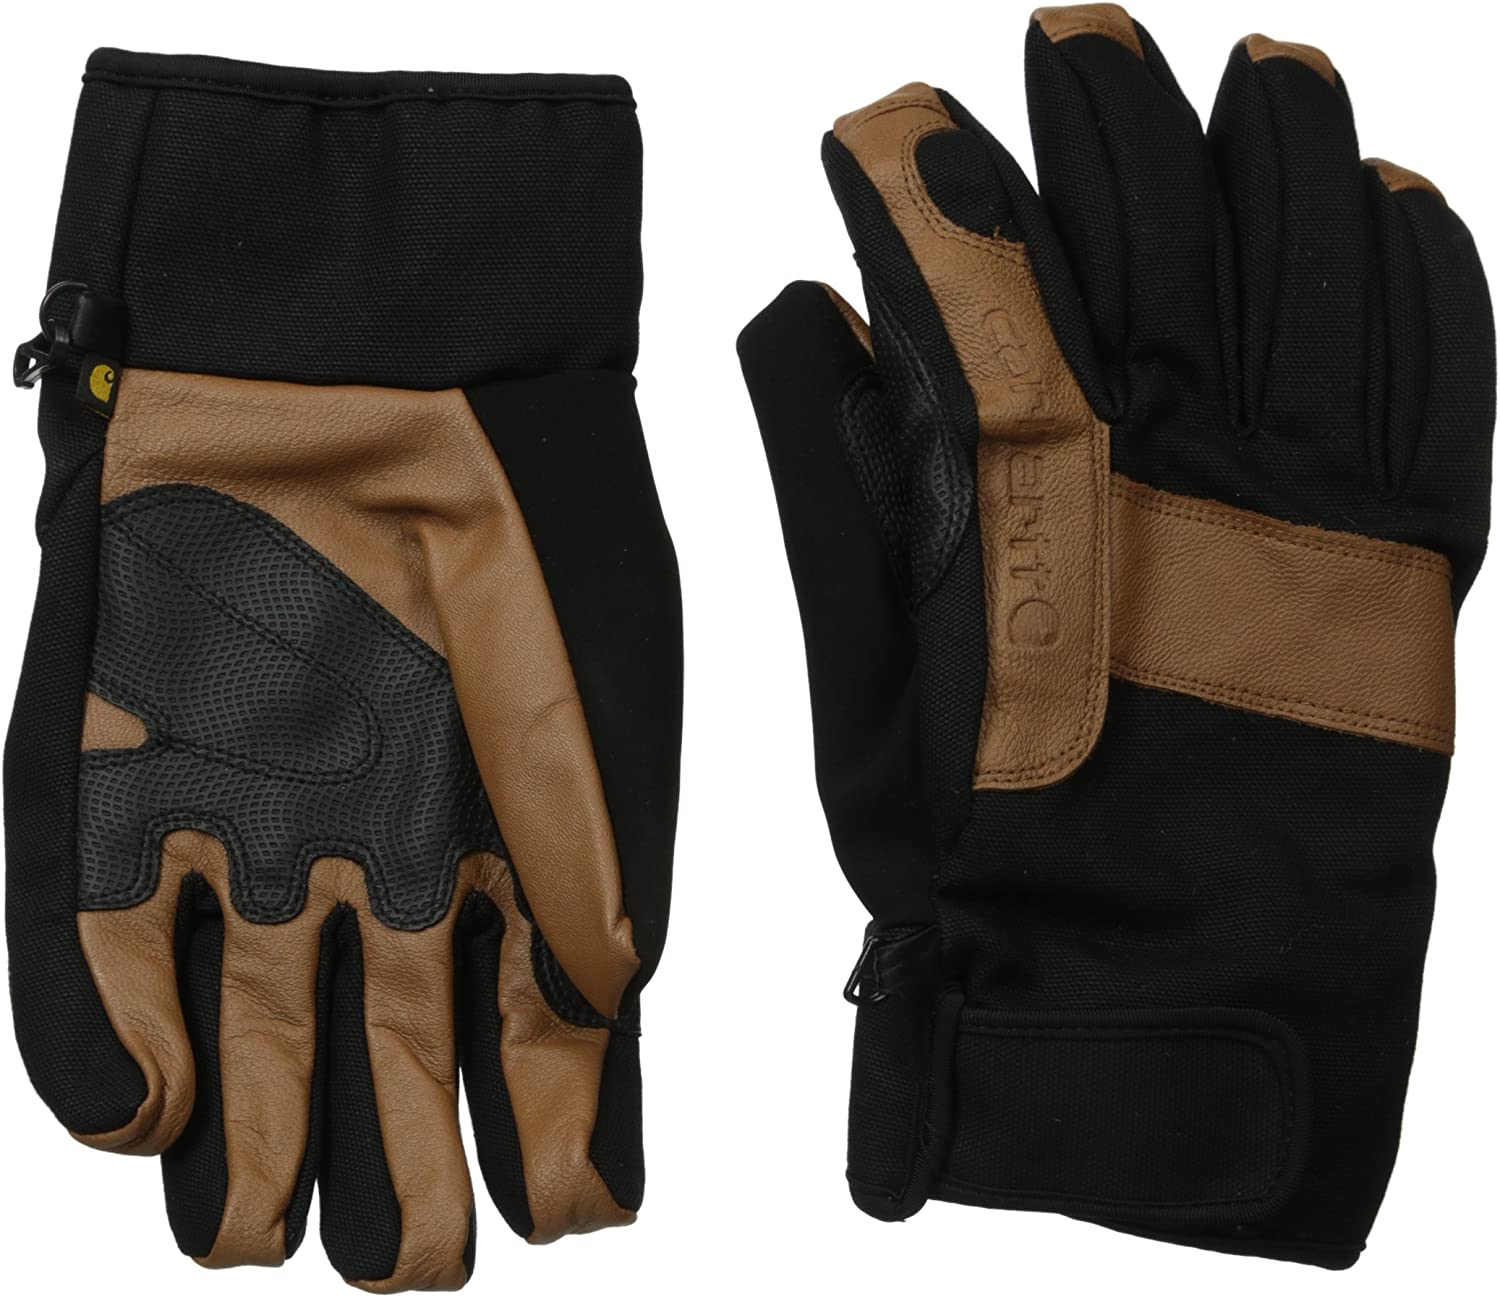 Black//Barley Carhartt Mens Cold Snap Insulated Work Glove XX-Large